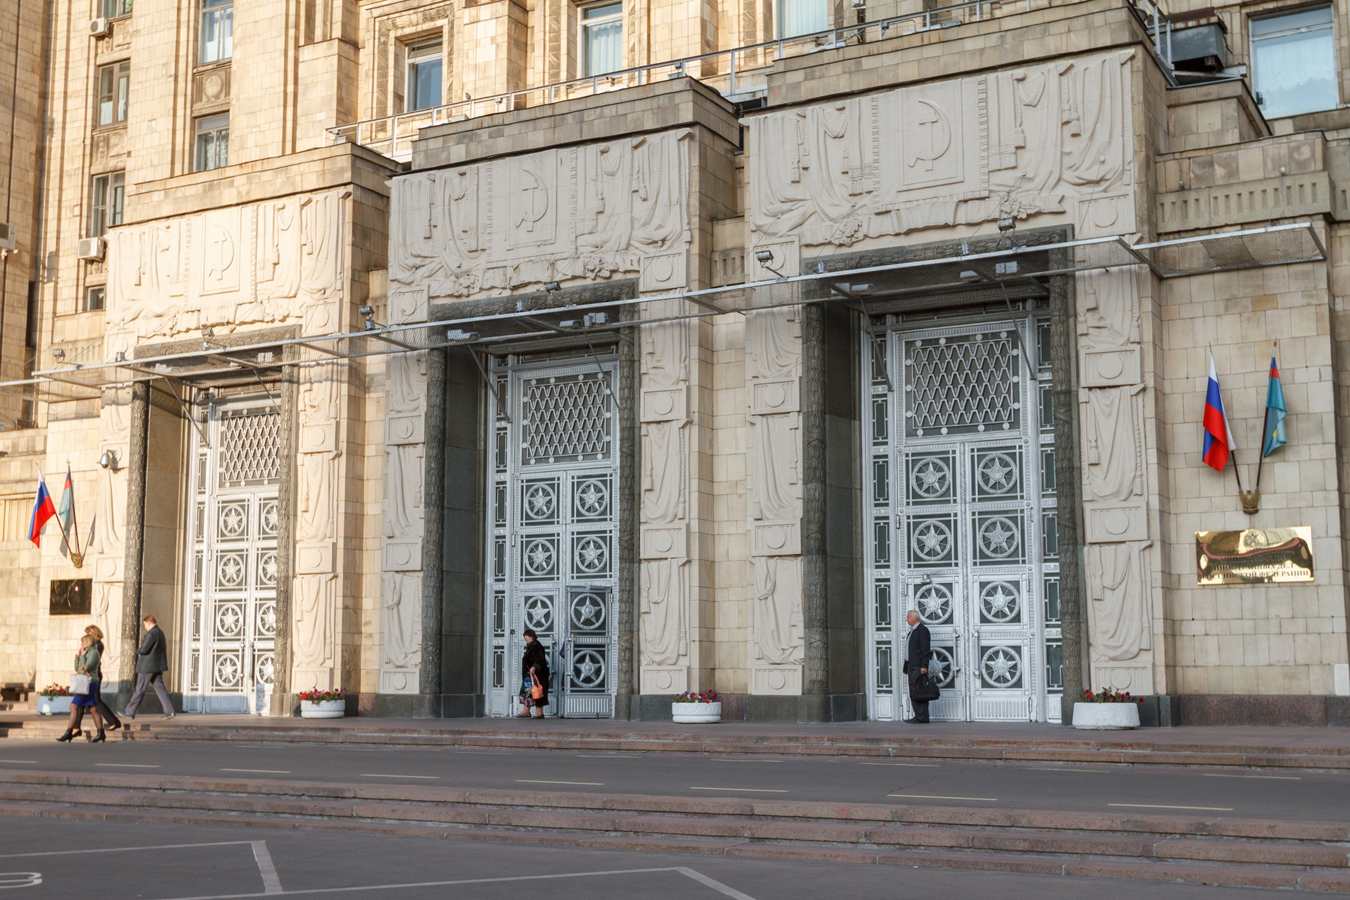 2017. The entrance doors of the Ministry of Foreign Affairs of USSR